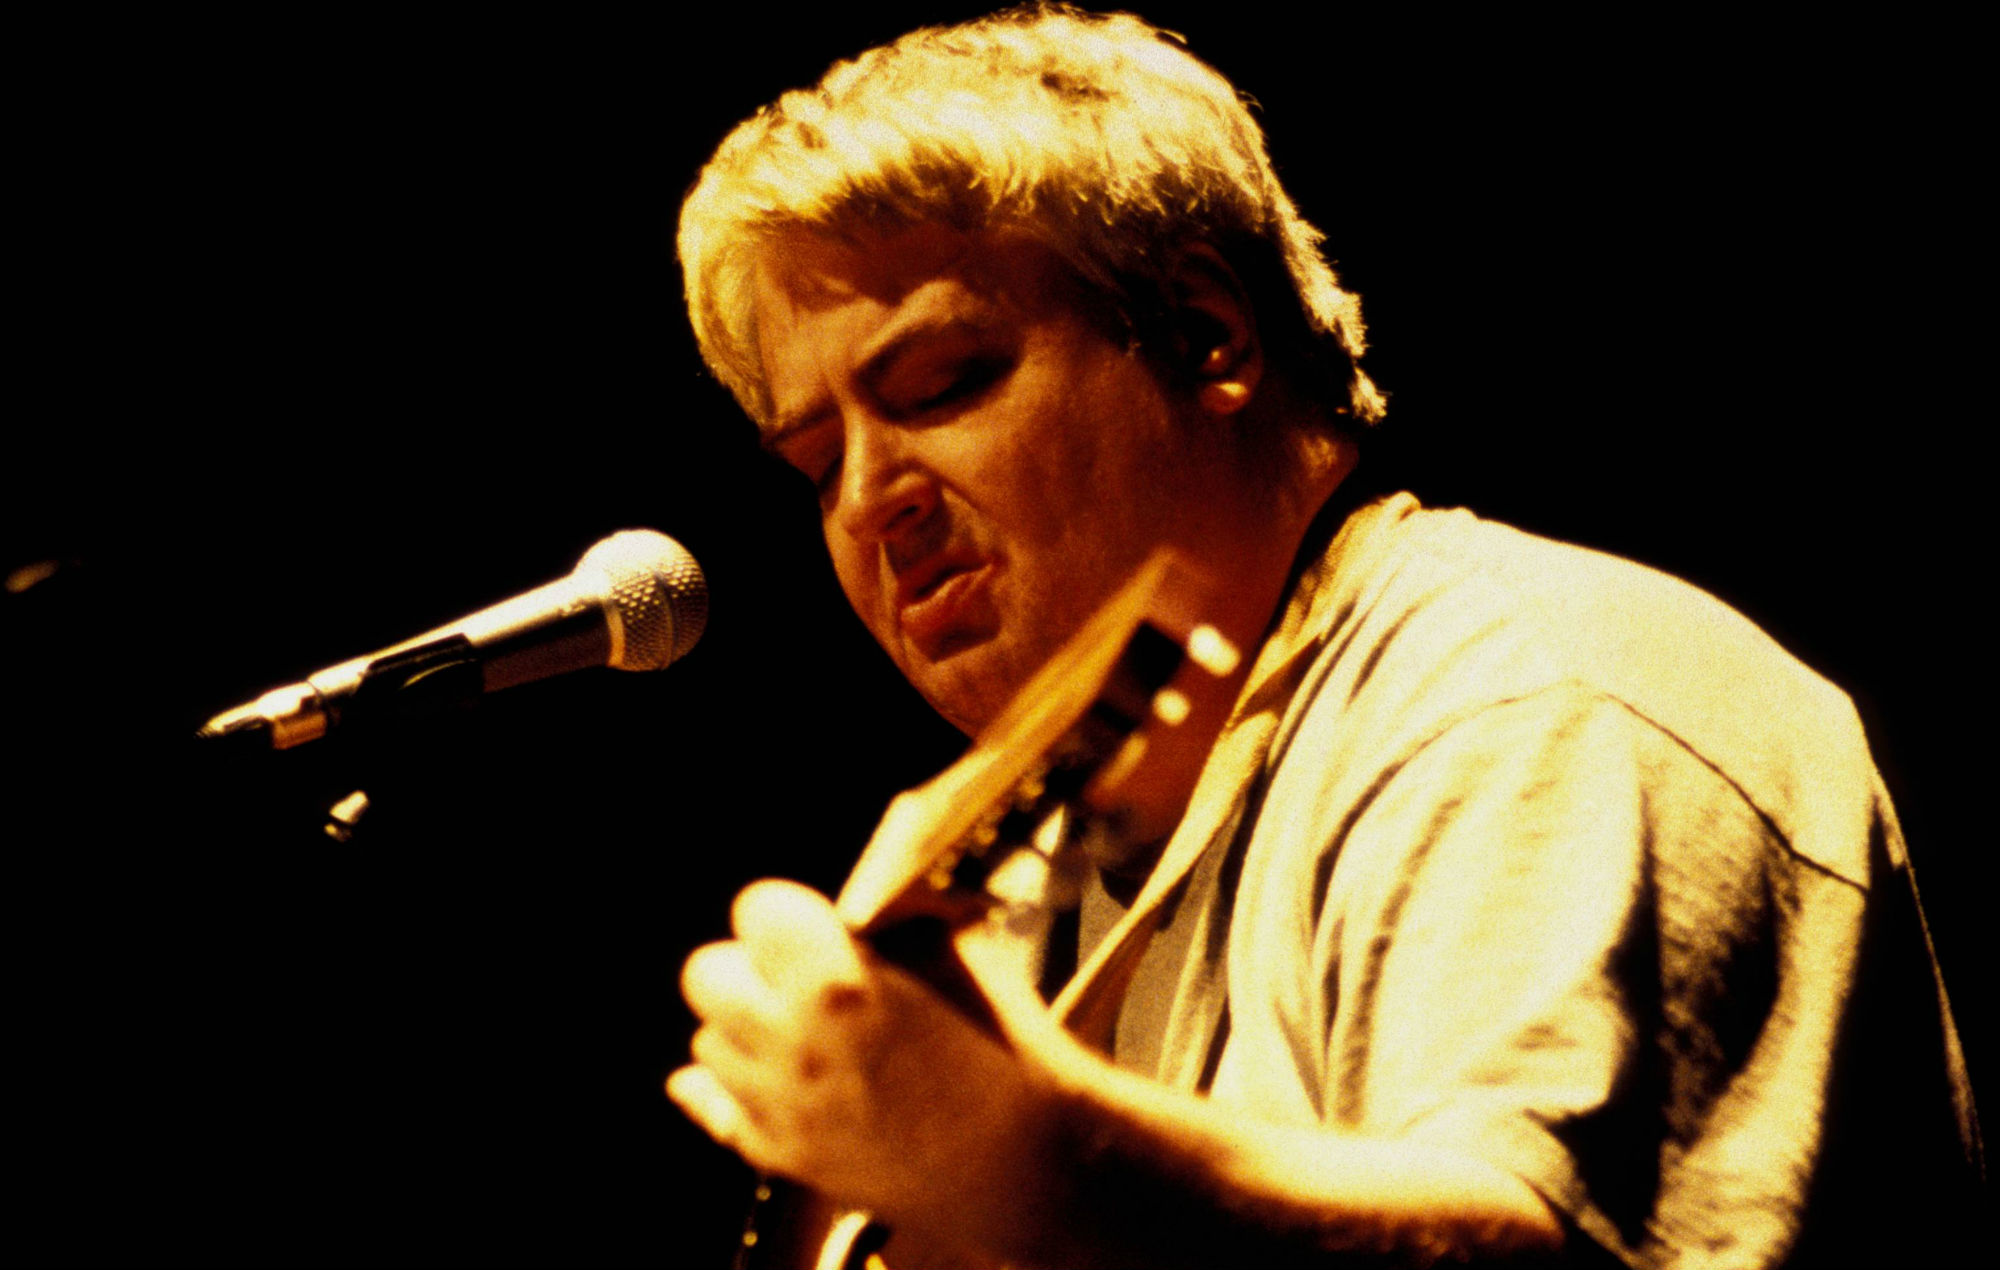 Daniel Johnston; Let's Talk